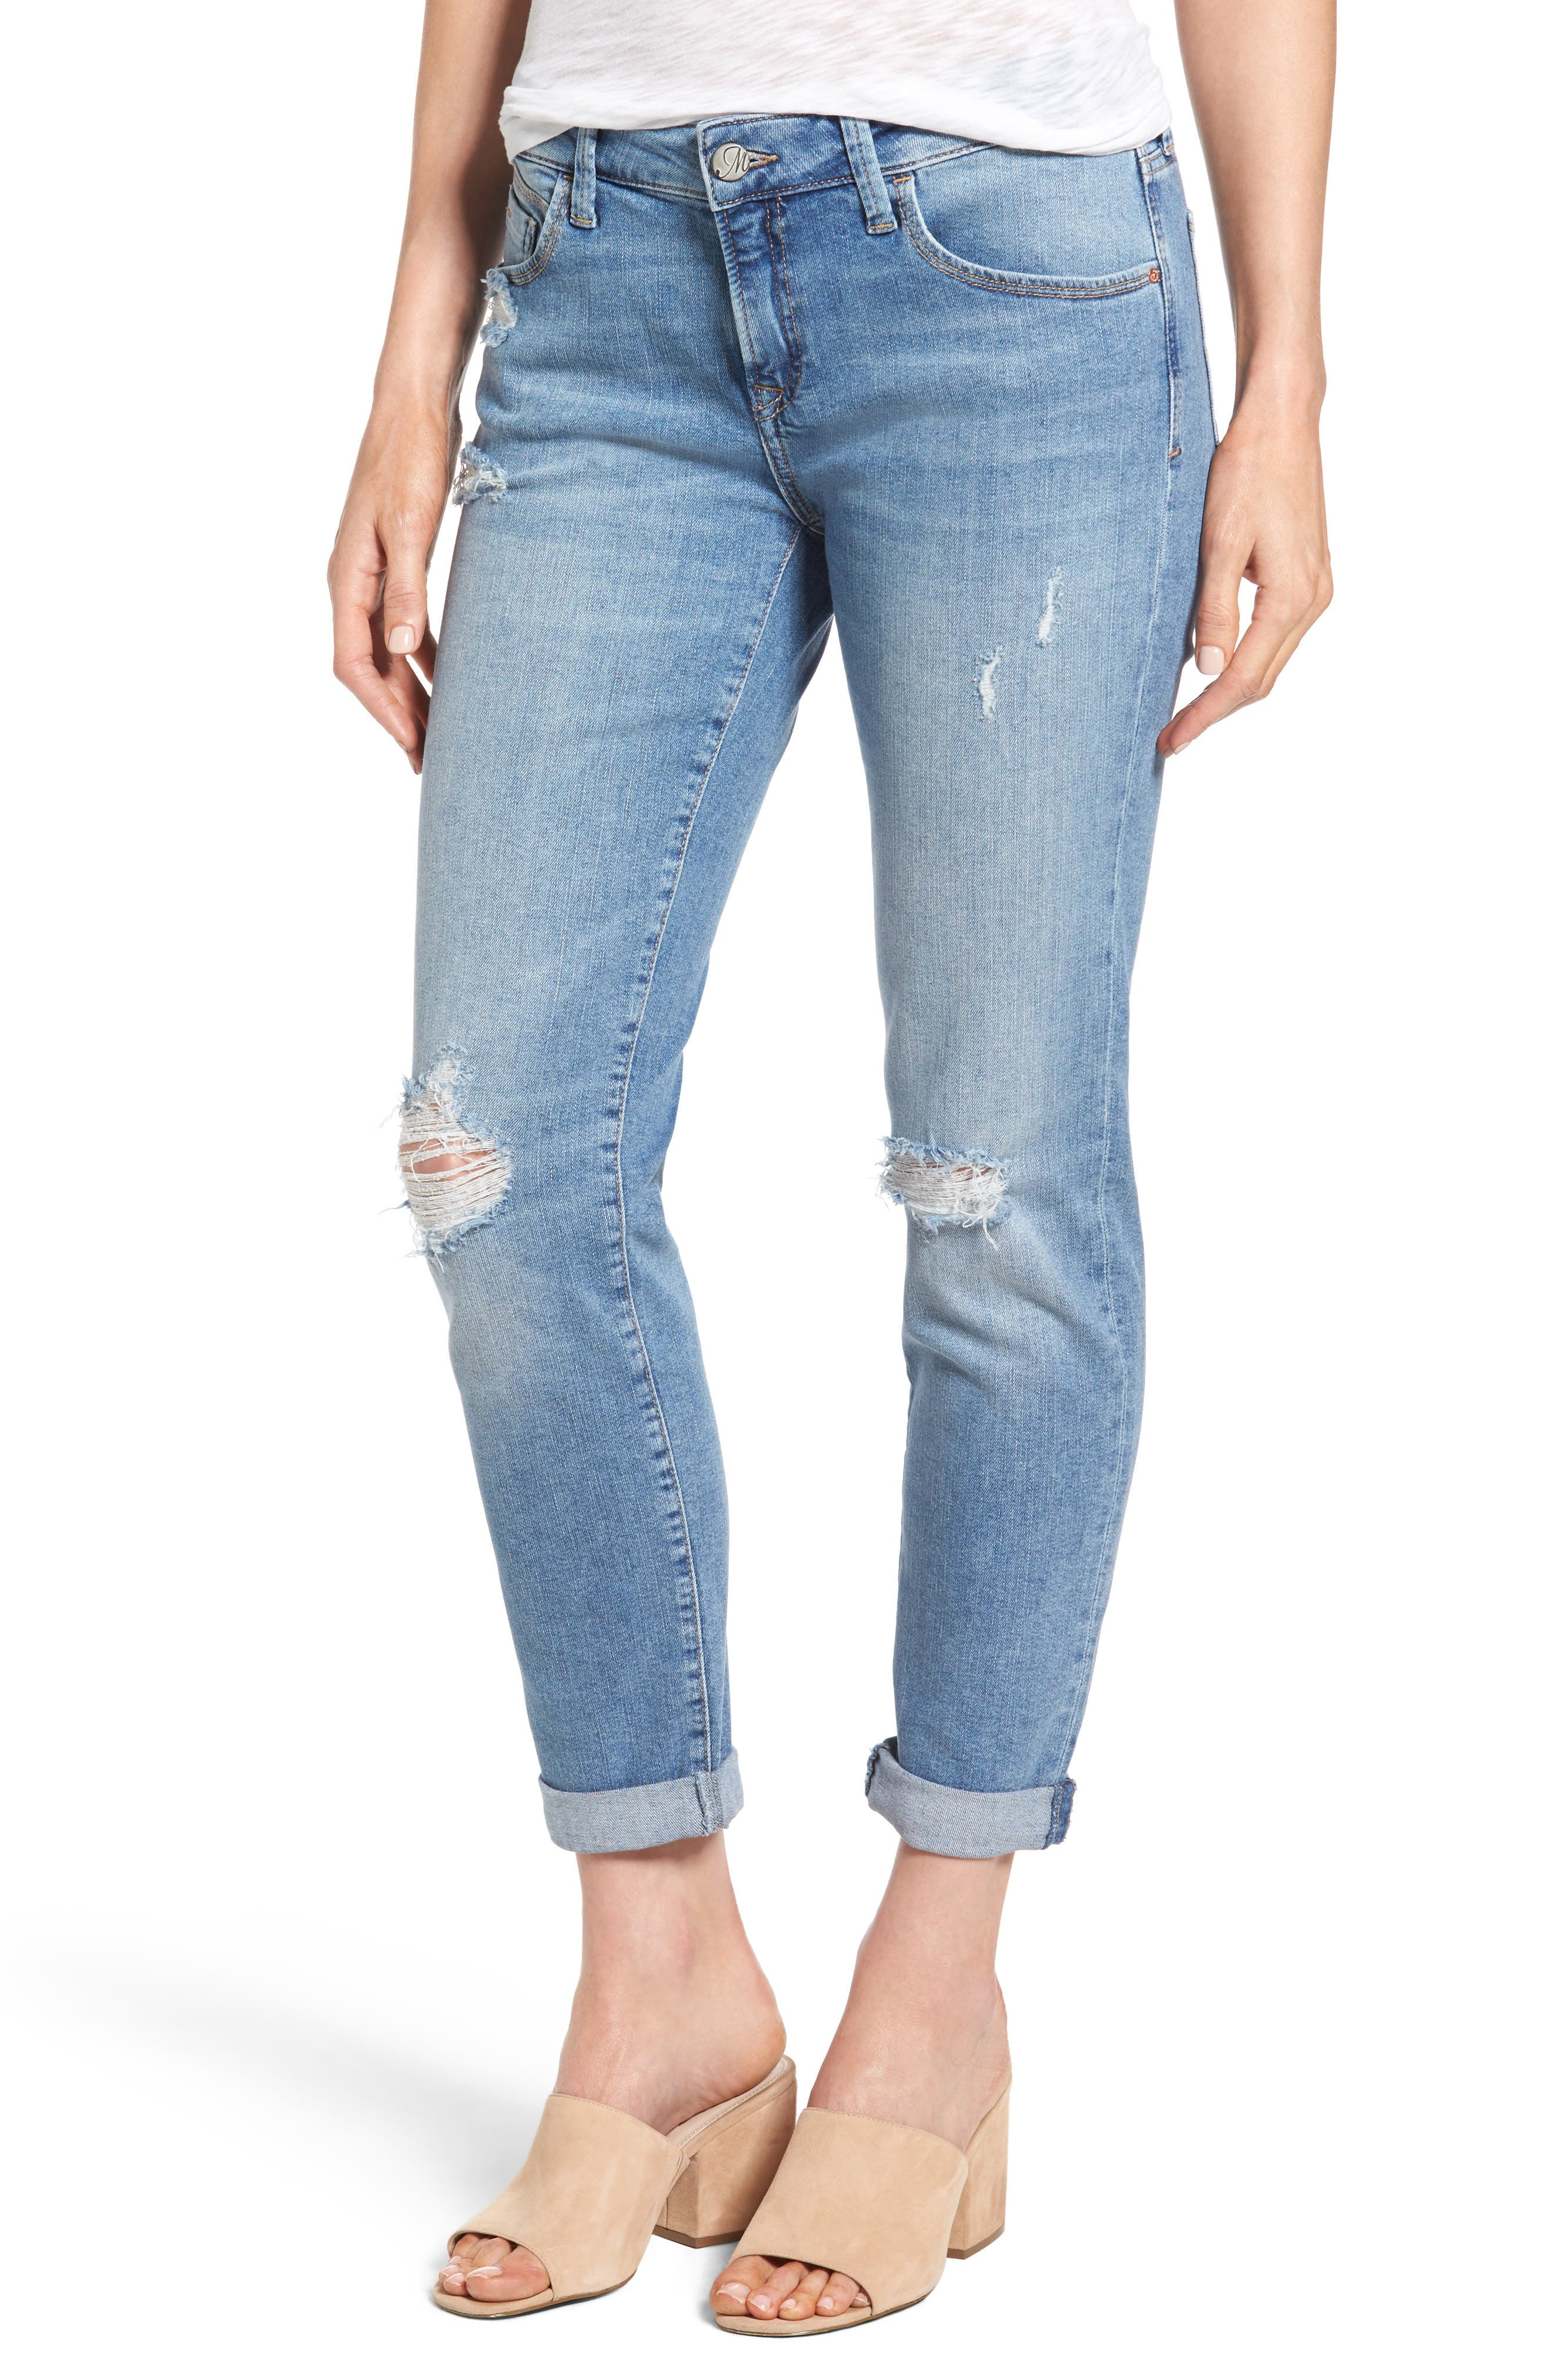 Mavi Jeans Ada Distressed Boyfriend Jeans (Light Used Vintage)